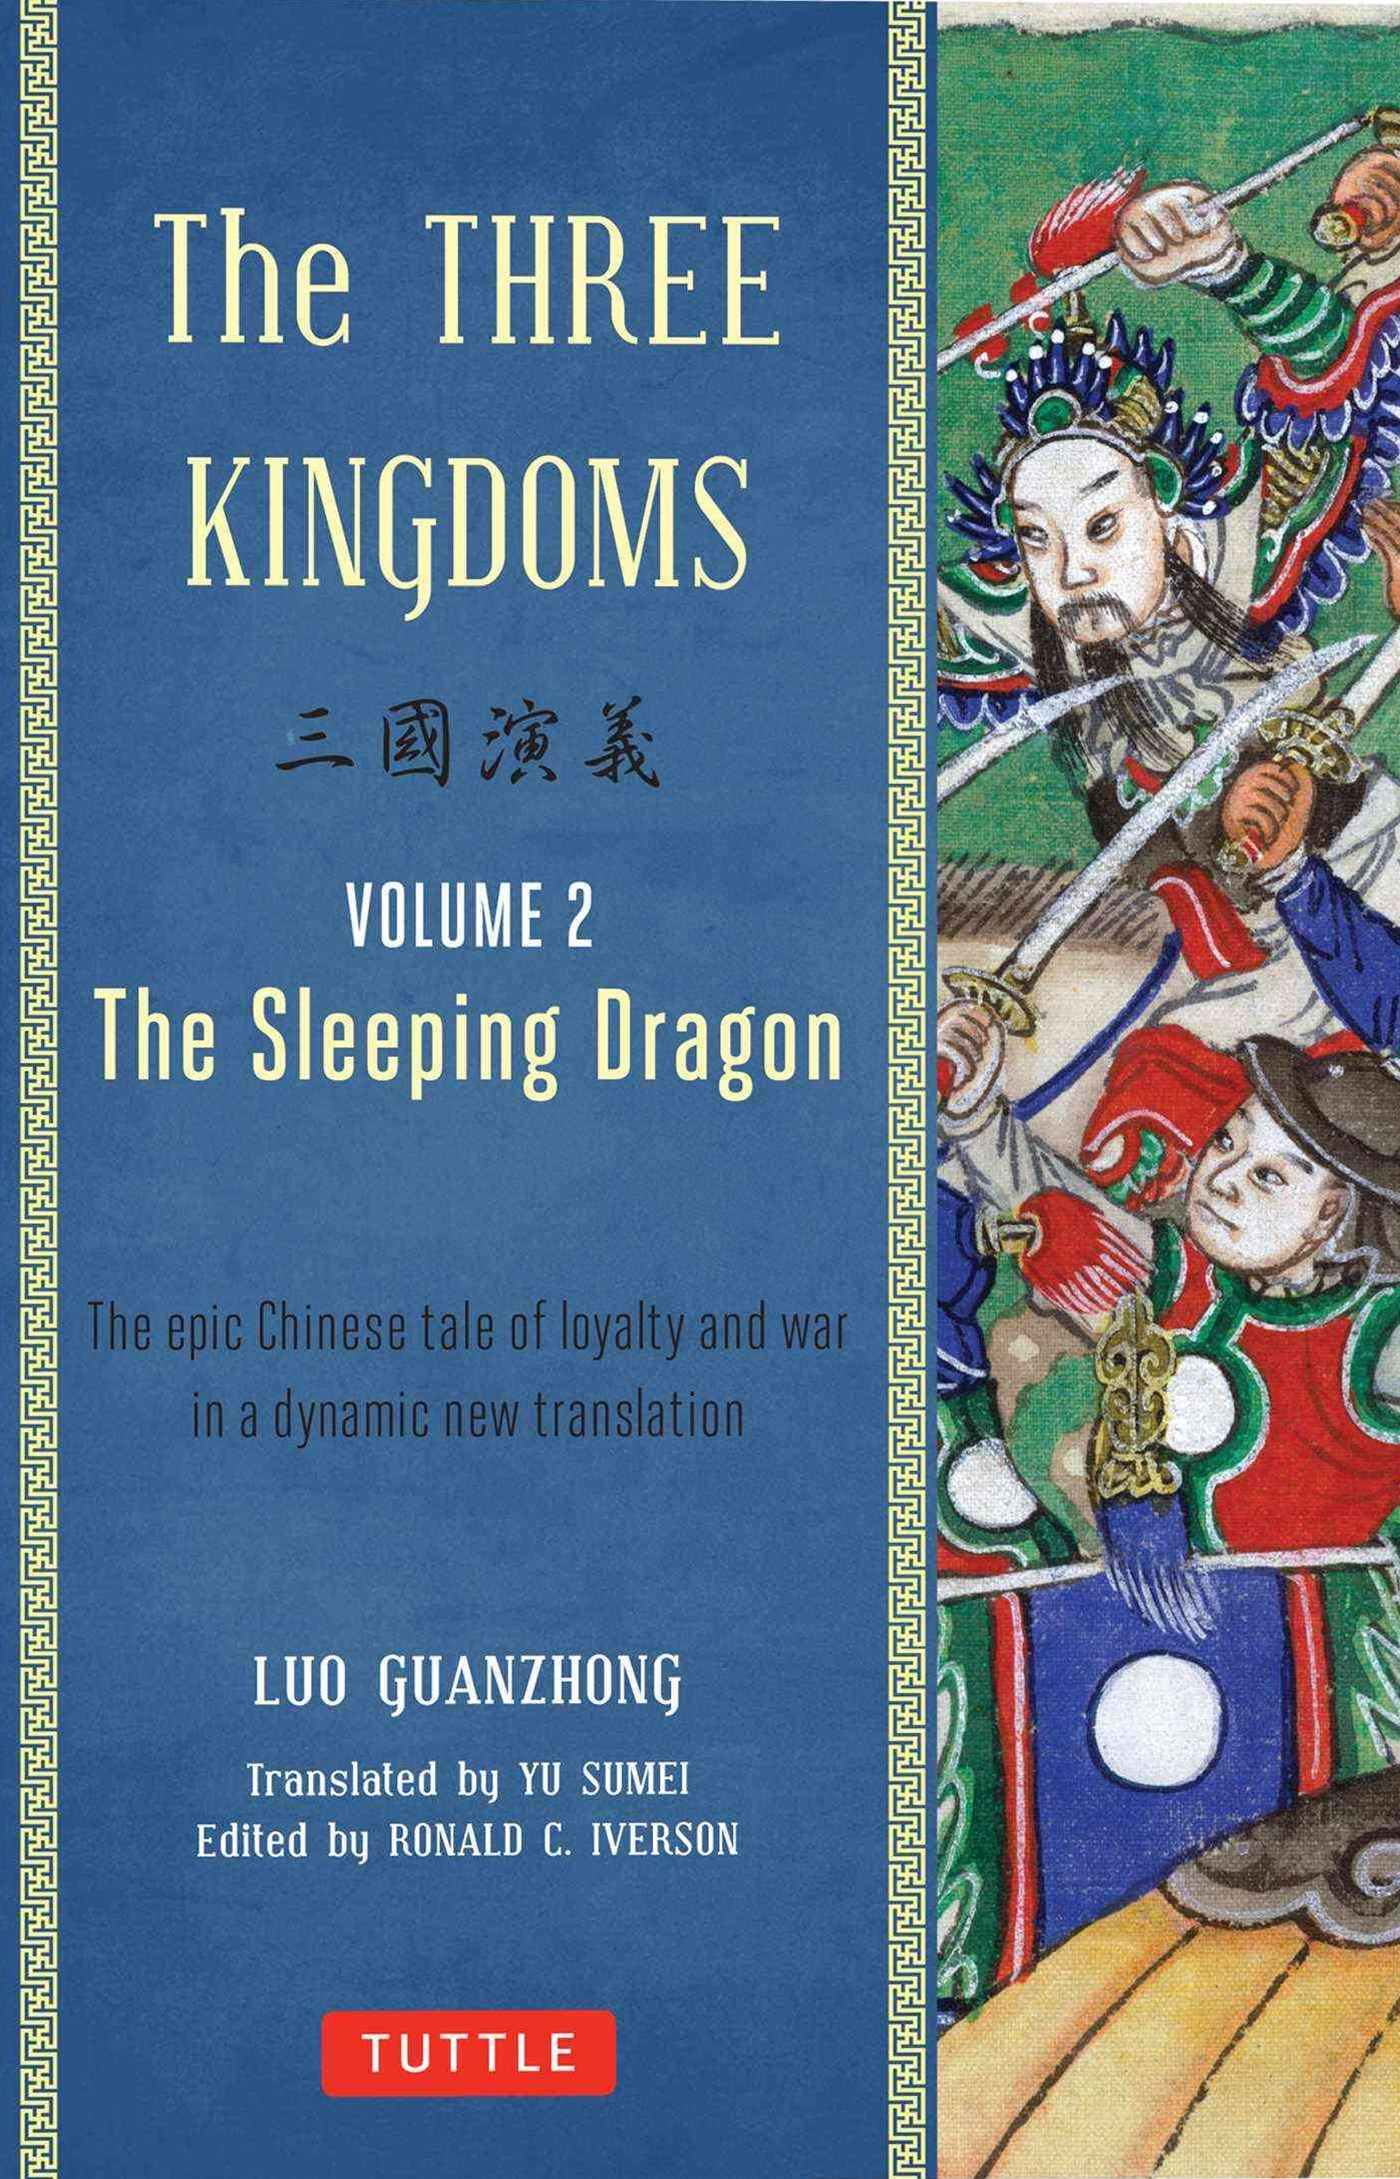 The Three Kingdoms Vol. 2